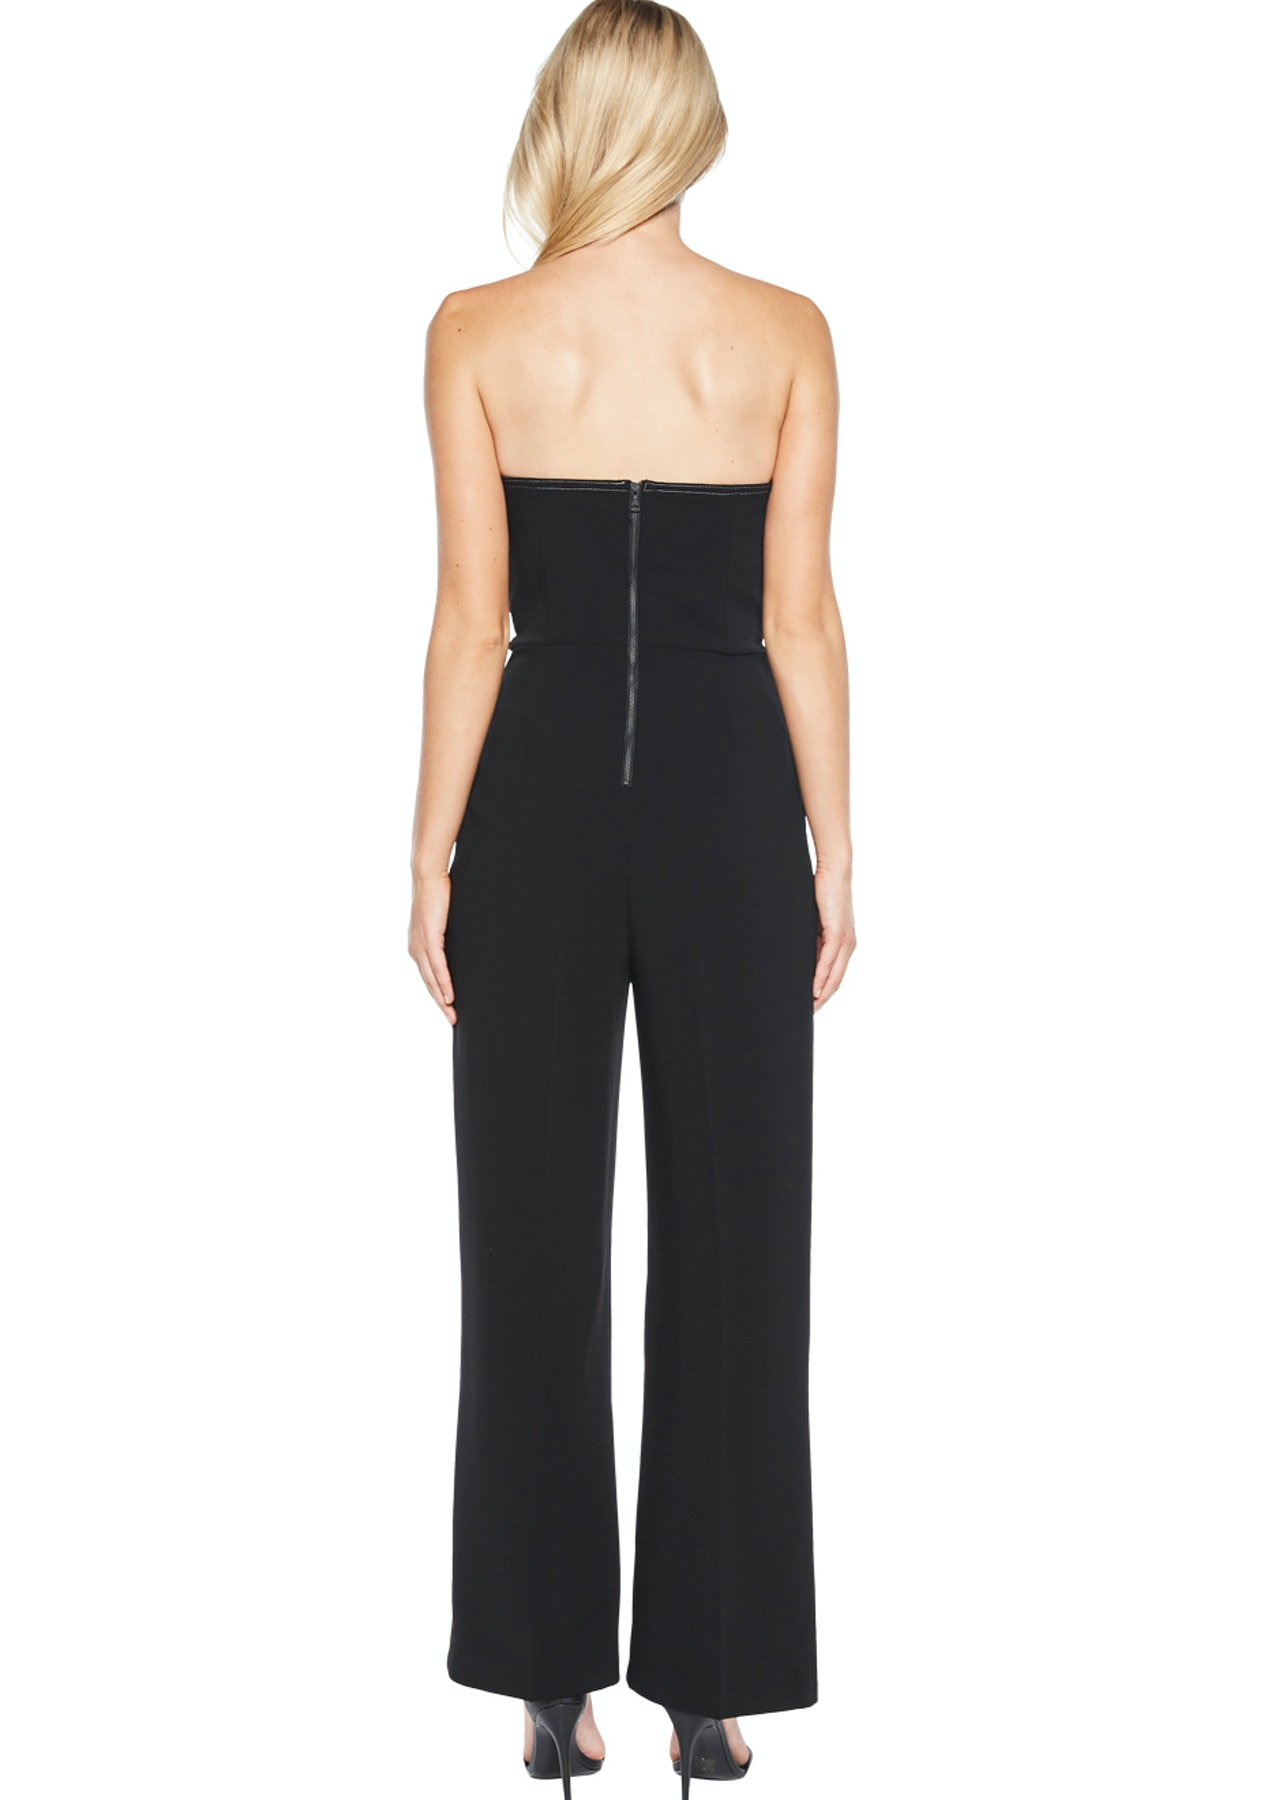 25a845ae867 Bardot - Twin Bow Jumpsuit - Black - Designer Outlet - Onceit